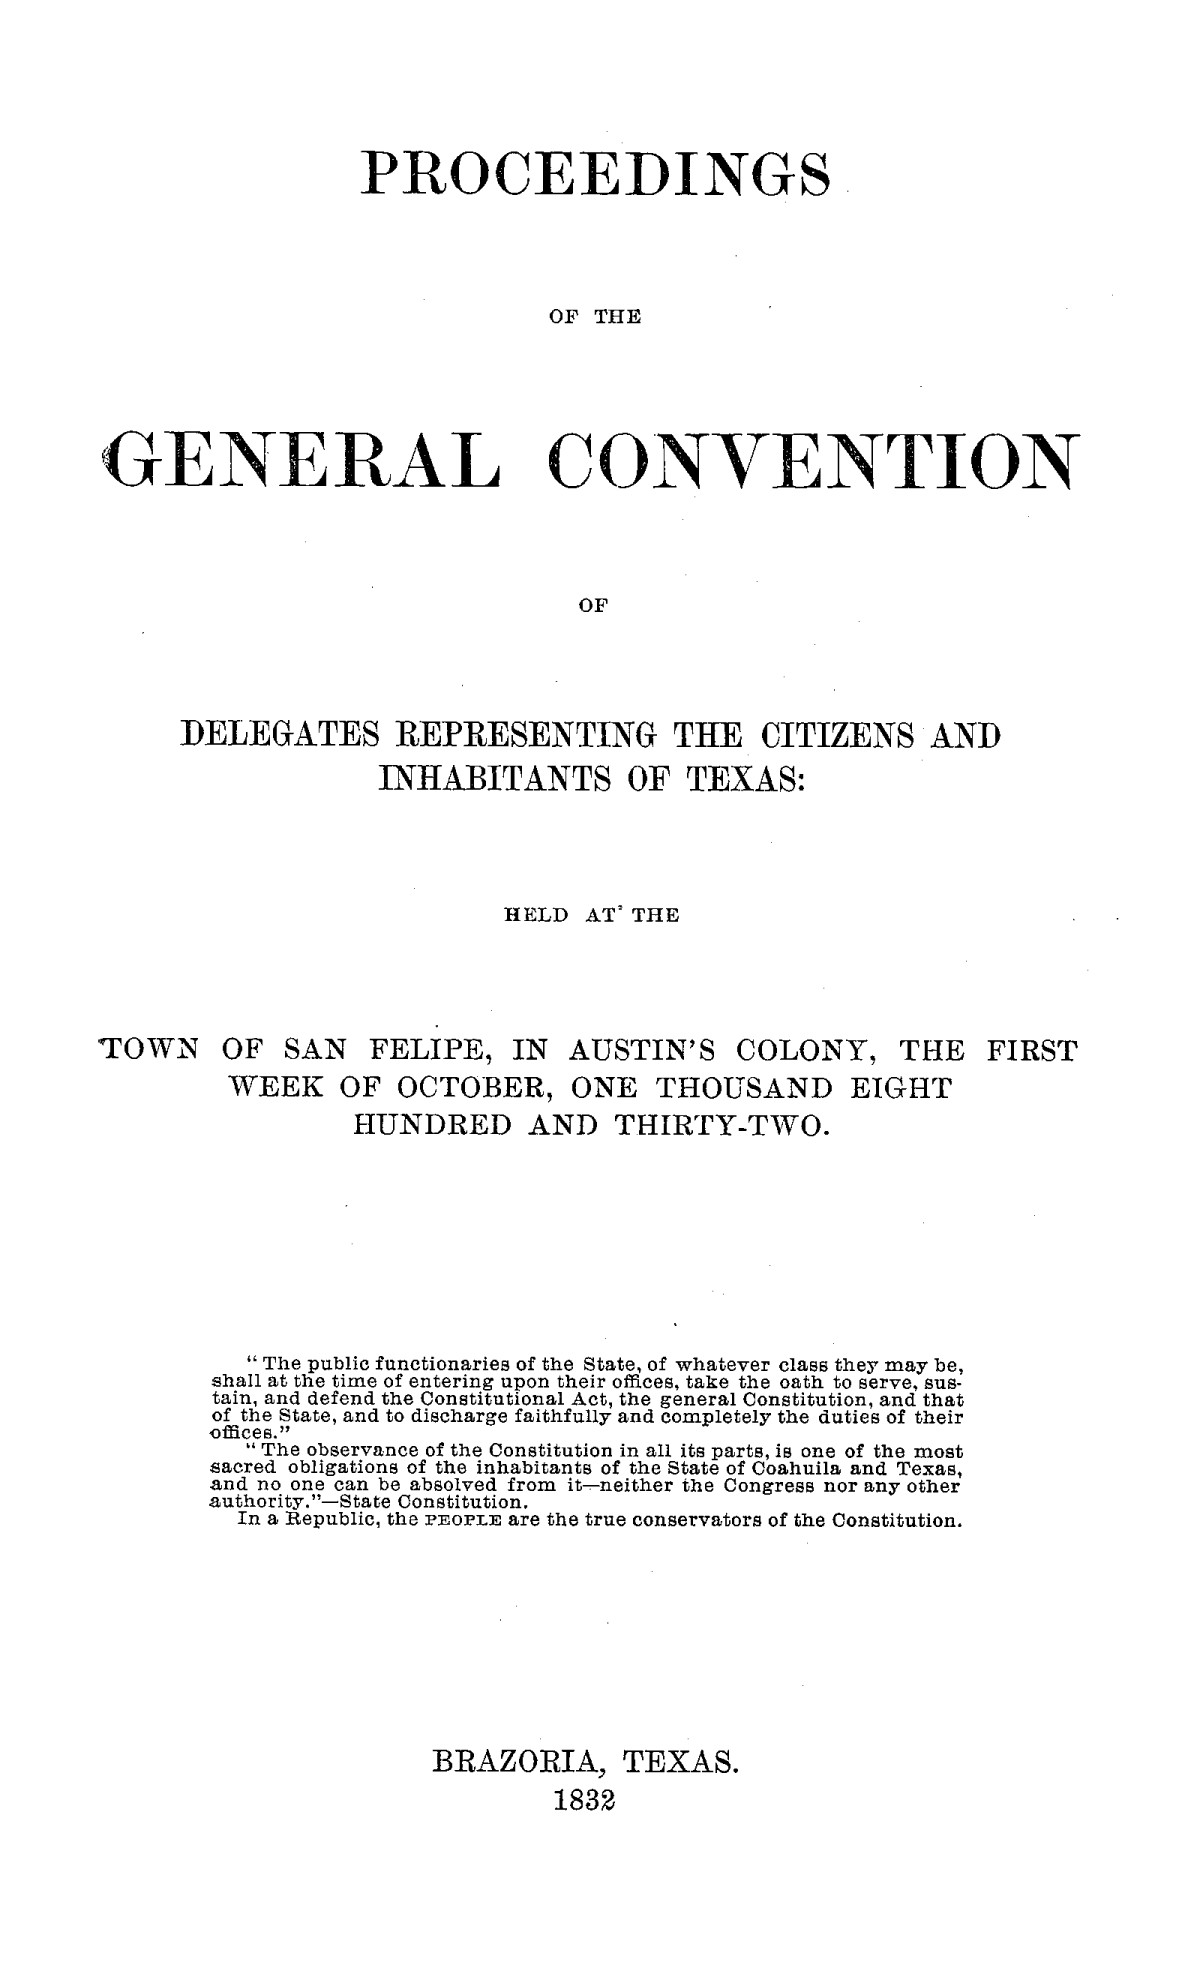 The Laws of Texas, 1822-1897 Volume 1                                                                                                      475